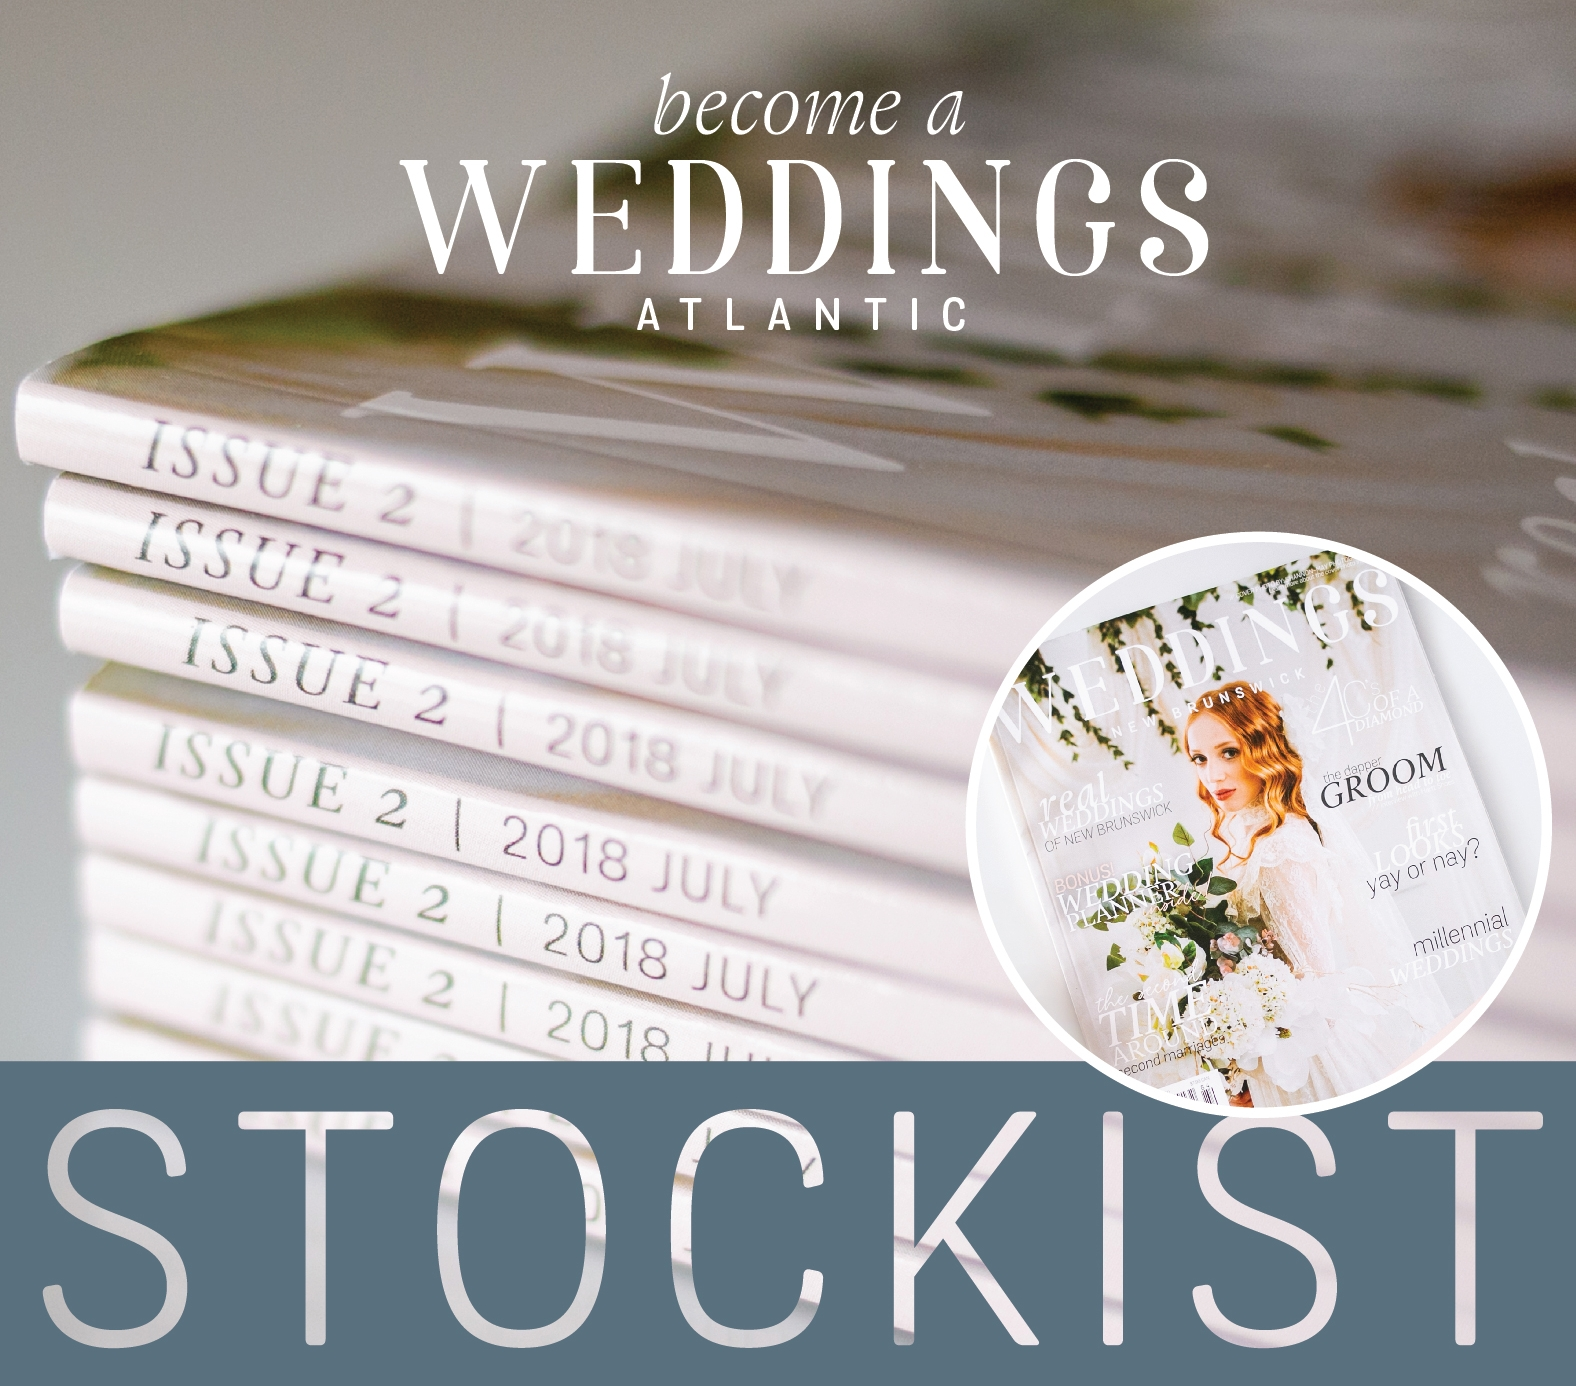 Contact: sales@weddingsatlantic.com  to become an official Weddings Atlantic Stockist - selling the latest issue of Weddings Atlantic Magazine.